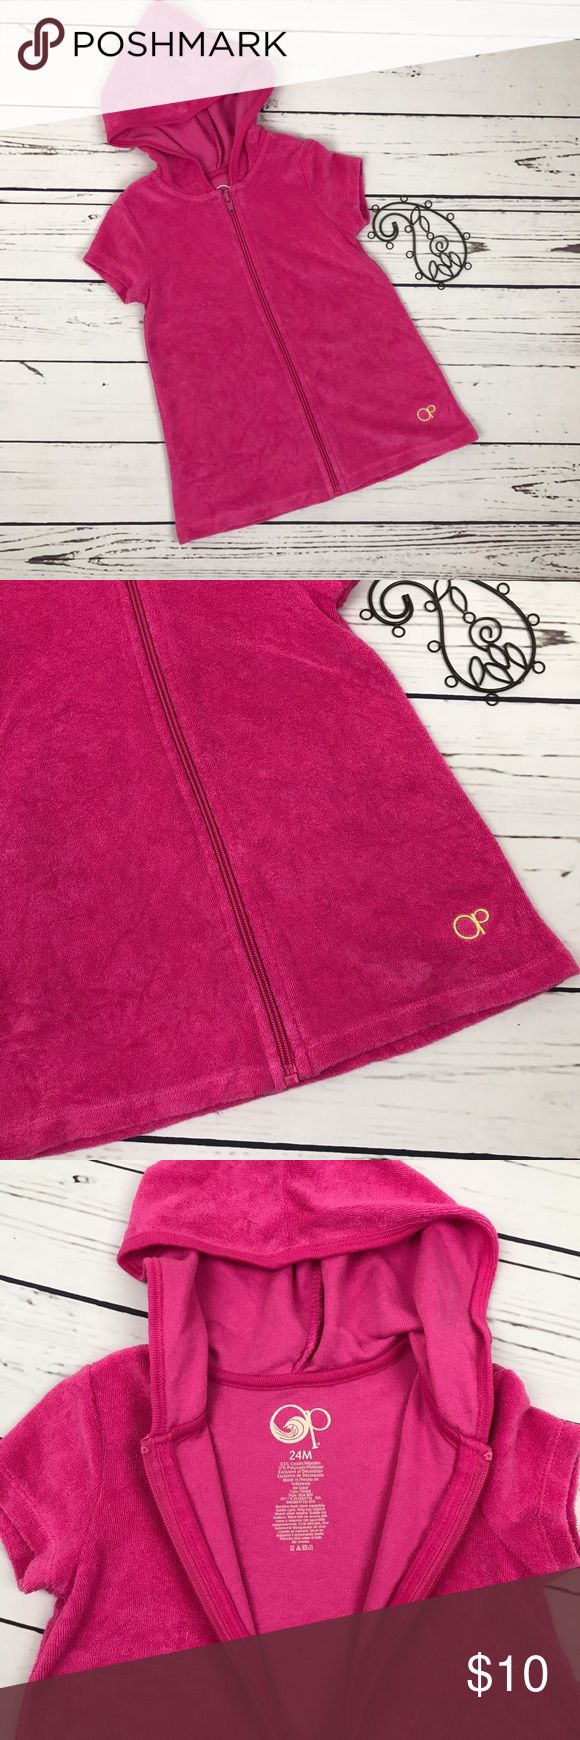 OP Girls Pink Towel Hoodie Swimsuit Cover Up Dress OP pink hooded towel dress. Size 24 Month. Love this for summer! VGUC OP Swim Coverups